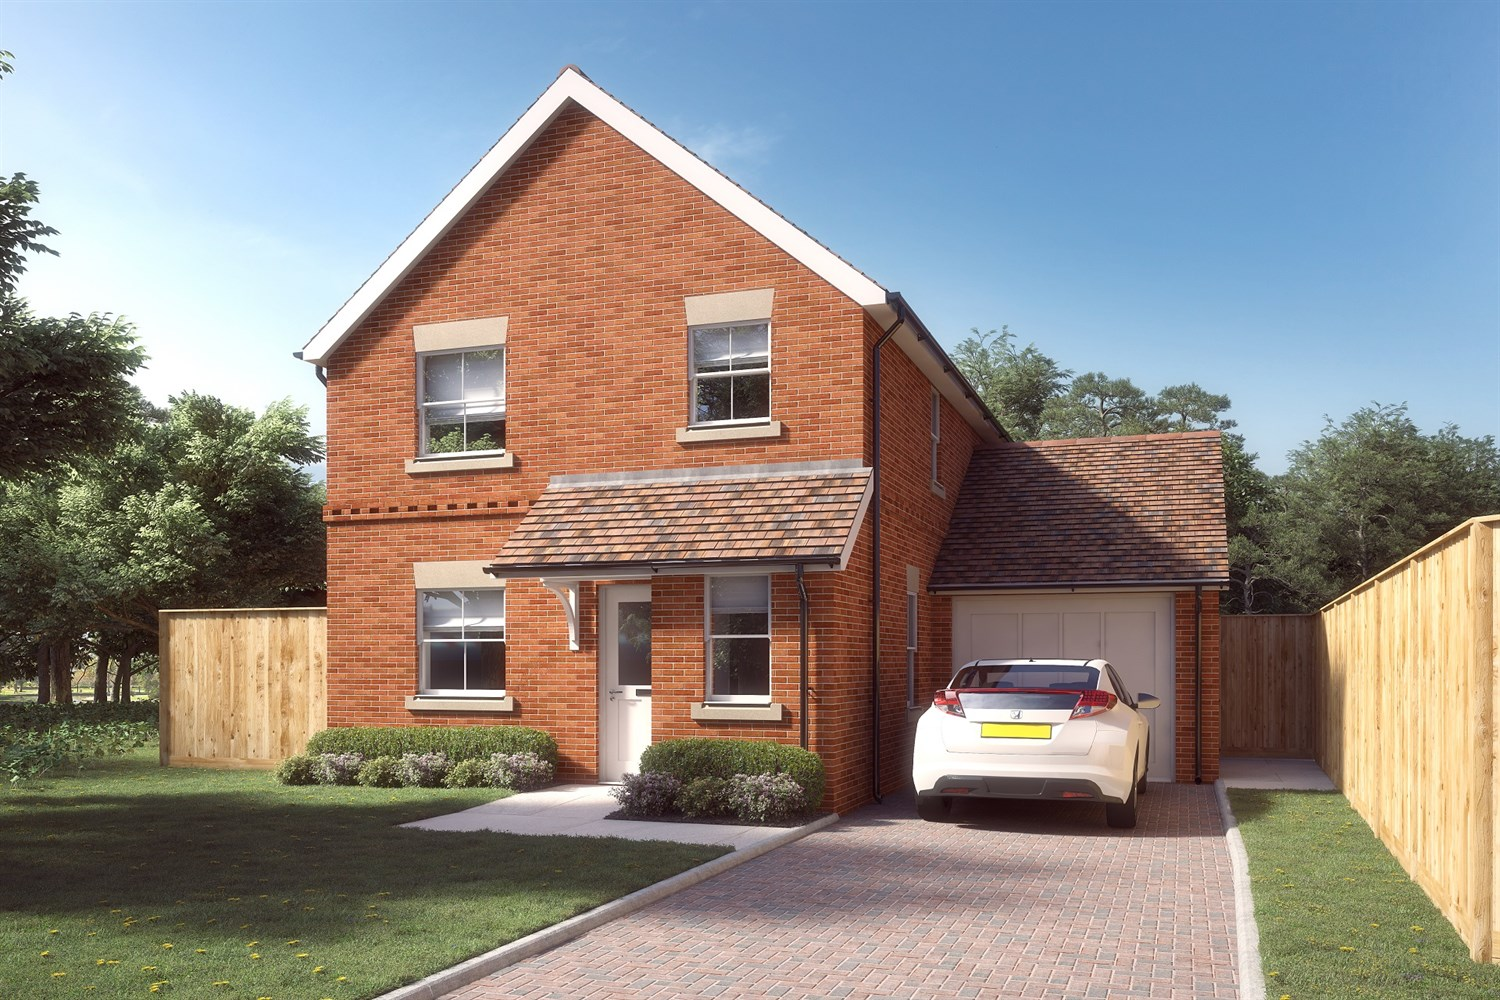 The Alder at Canberra Green - 3 bed detached, Charvil, RG10 9TS